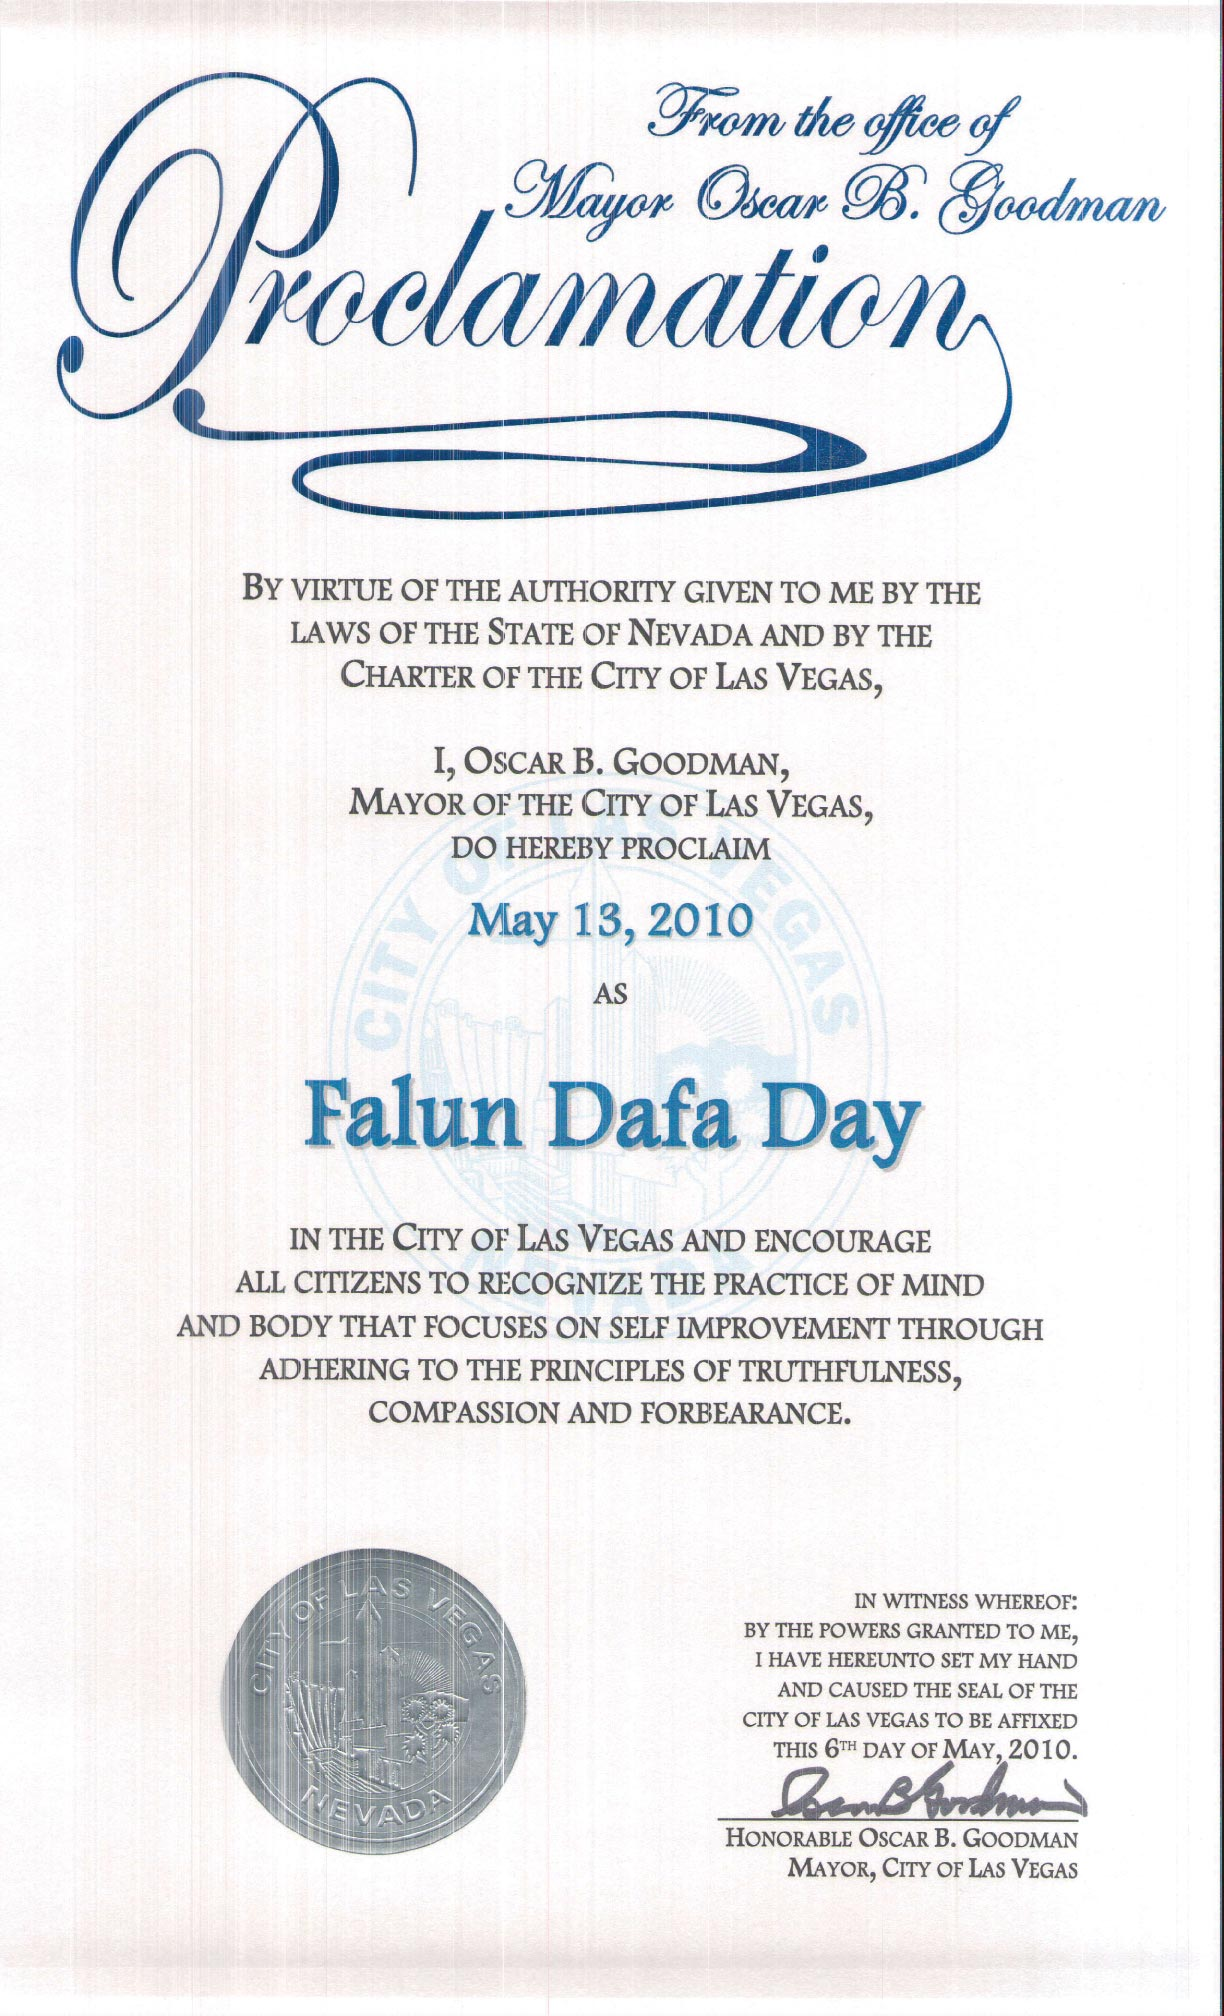 Falun Dafa Las Vegas: Awards and Recognitions in Nevada